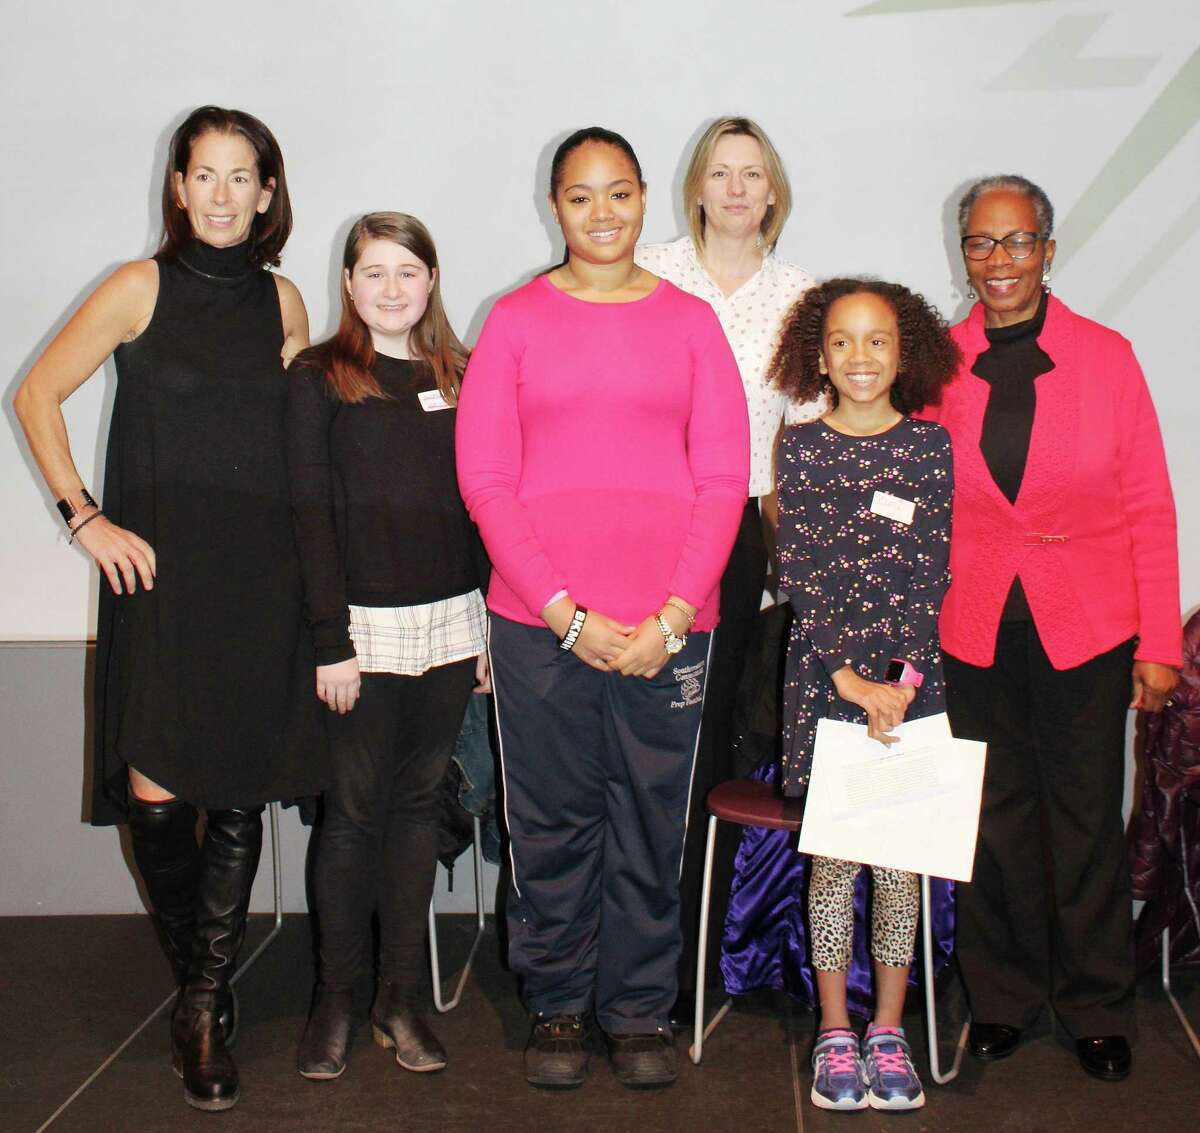 At a March 9 LiveGirl leadership summit, CEOs and company founders pose with the winners of Girl Boss contest. From left: Claire O?'Hare, Audrey Long, Kellie Taylor, Sarah Beach, Zuri Giddings and Cynthia Barnett.